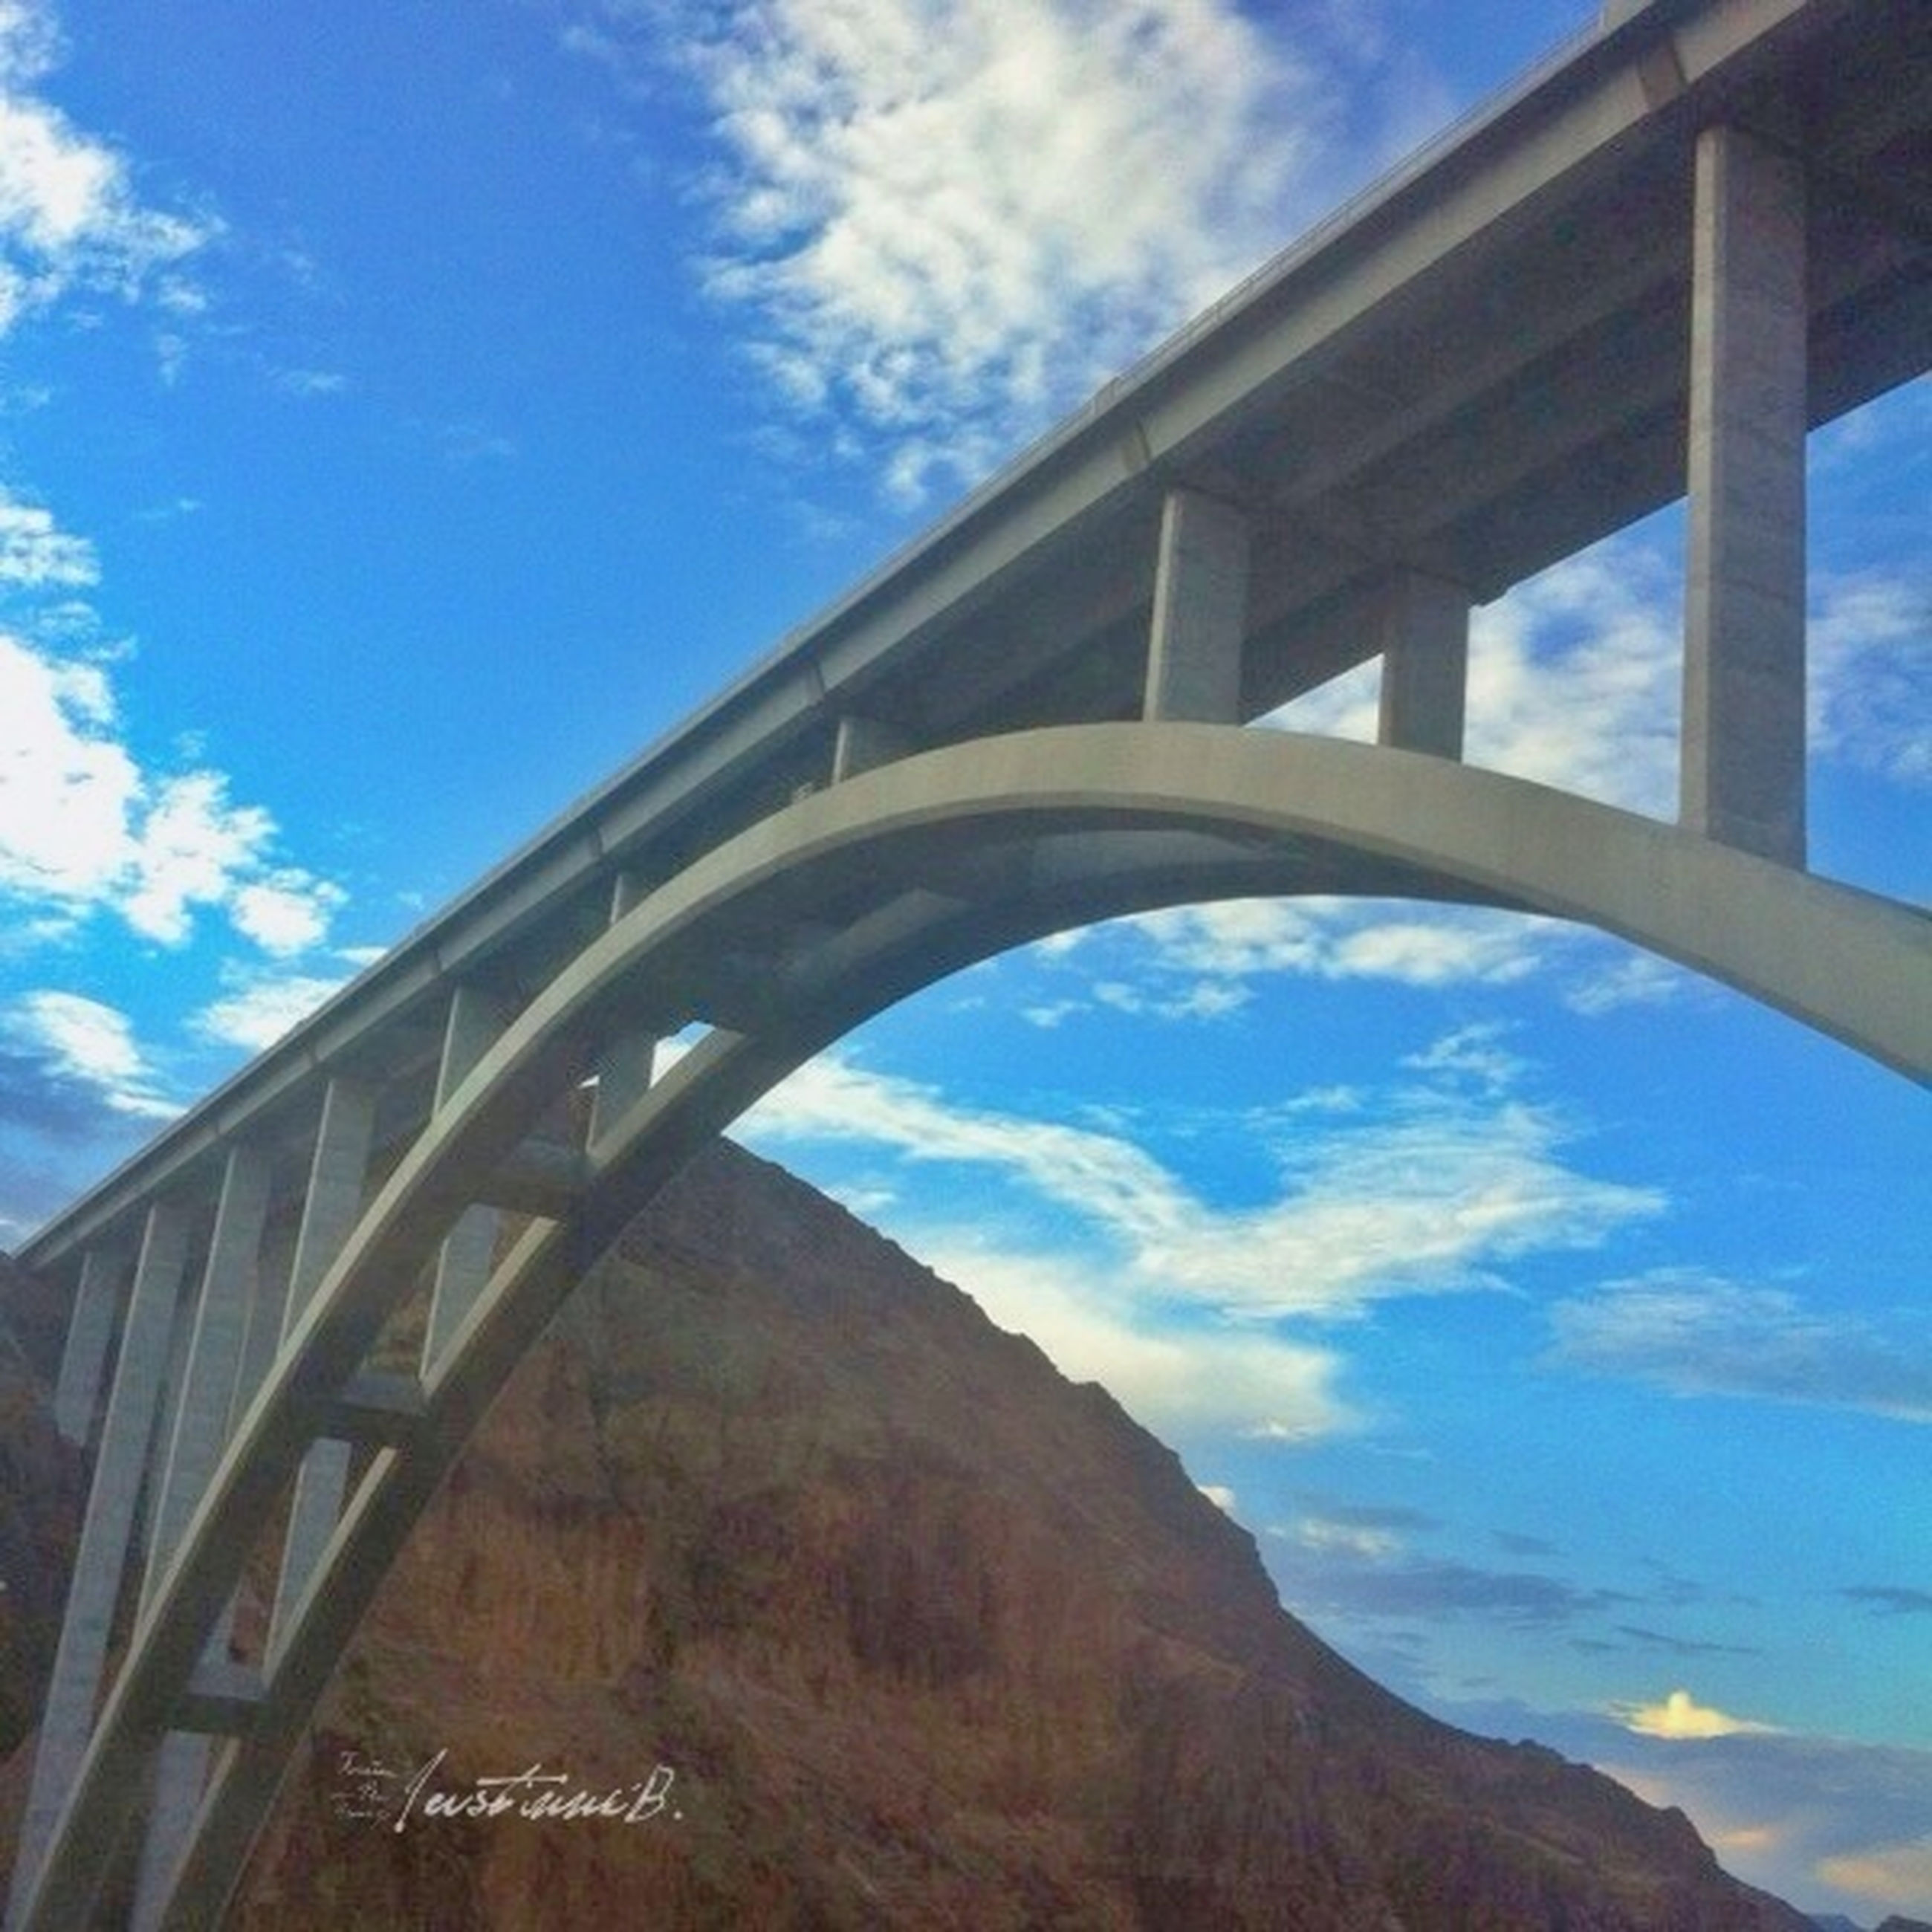 architecture, built structure, sky, connection, bridge - man made structure, low angle view, cloud - sky, engineering, cloud, bridge, blue, cloudy, day, no people, outdoors, river, arch, metal, building exterior, transportation